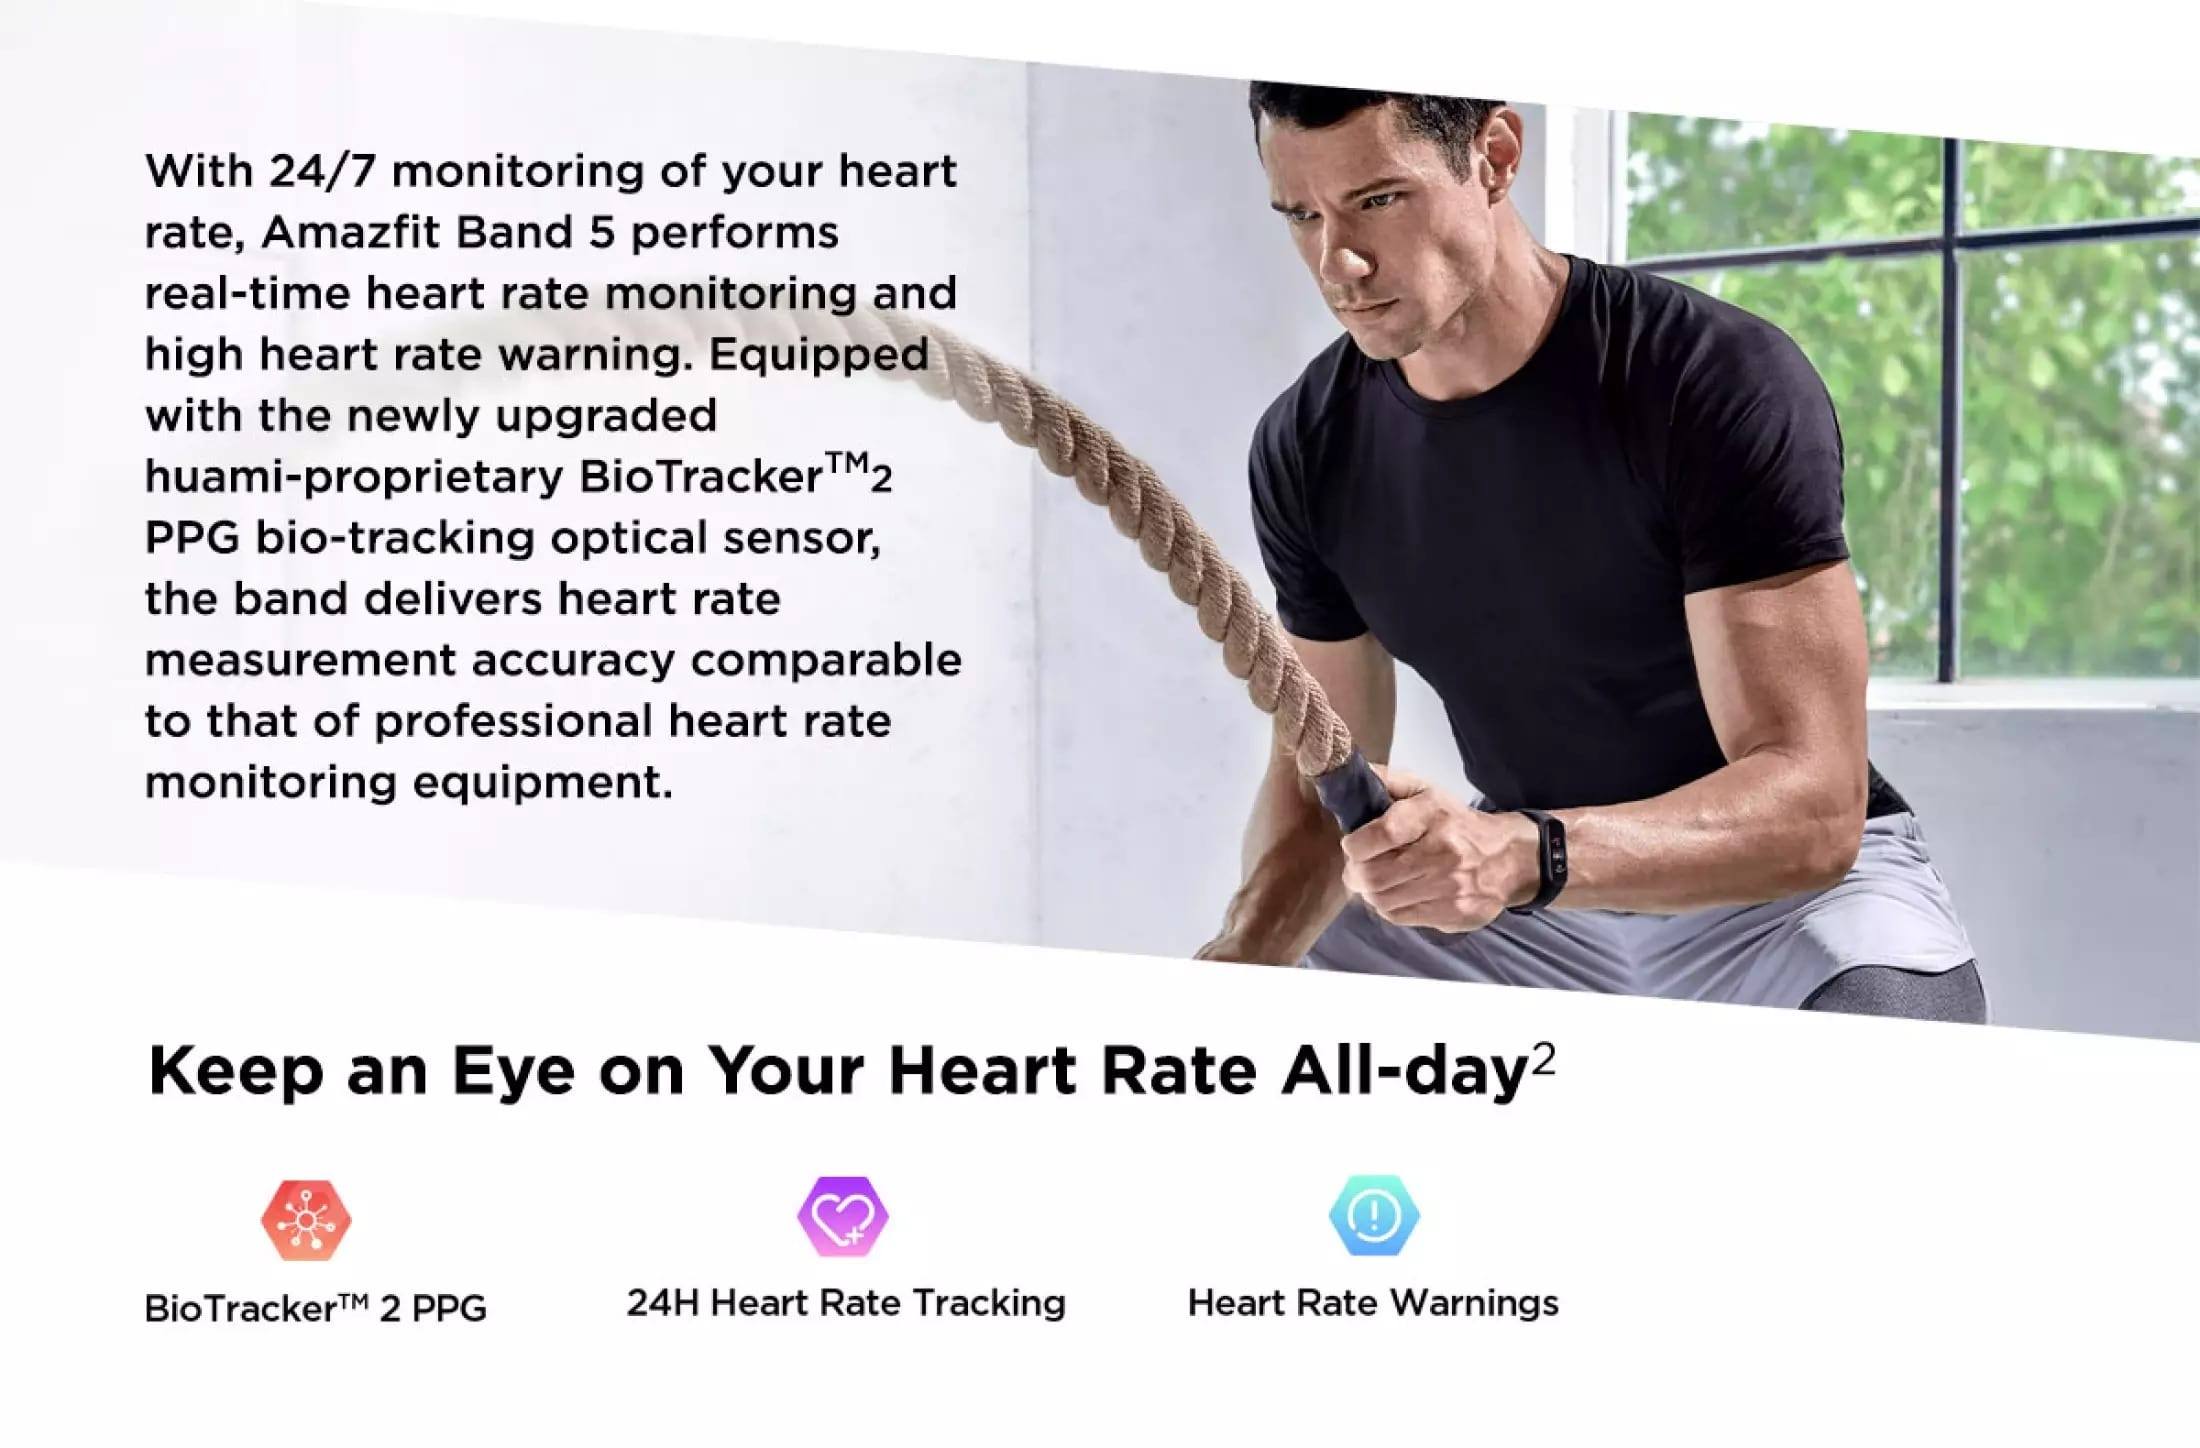 Amazfit Band 5 Keeps Your Hear Rate